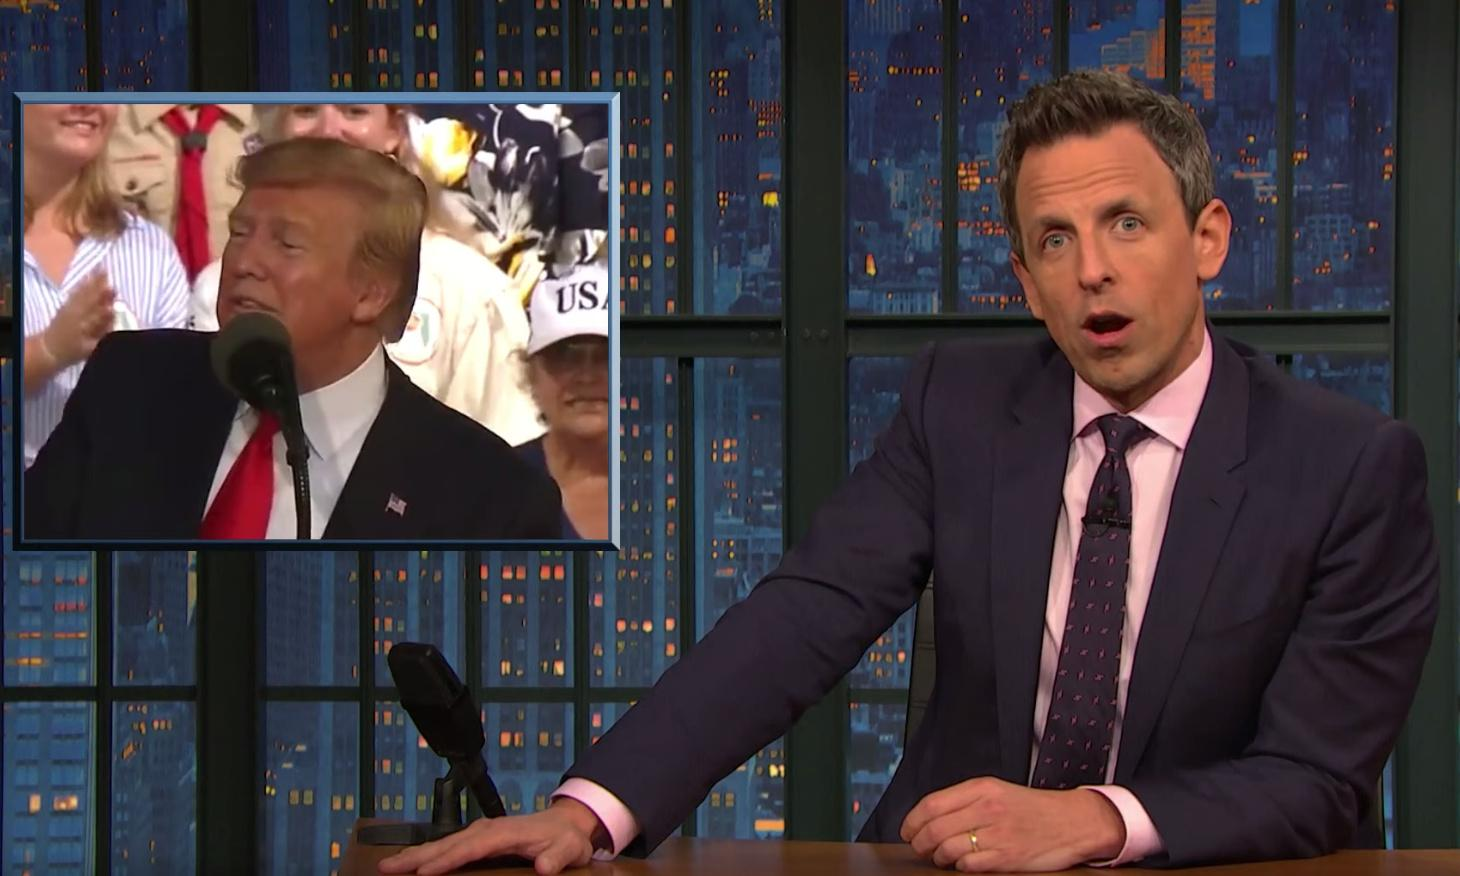 Seth Meyers to Trump: 'You don't get credit for predicting headlines you created'